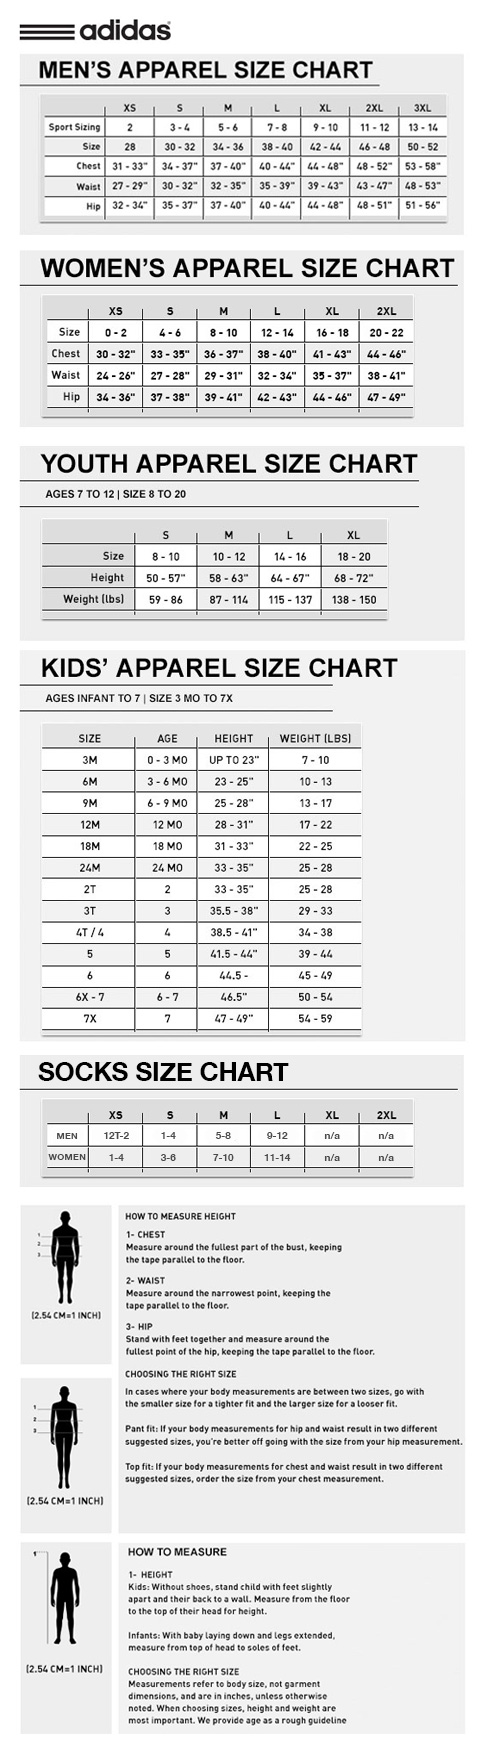 adidas apparel size chart